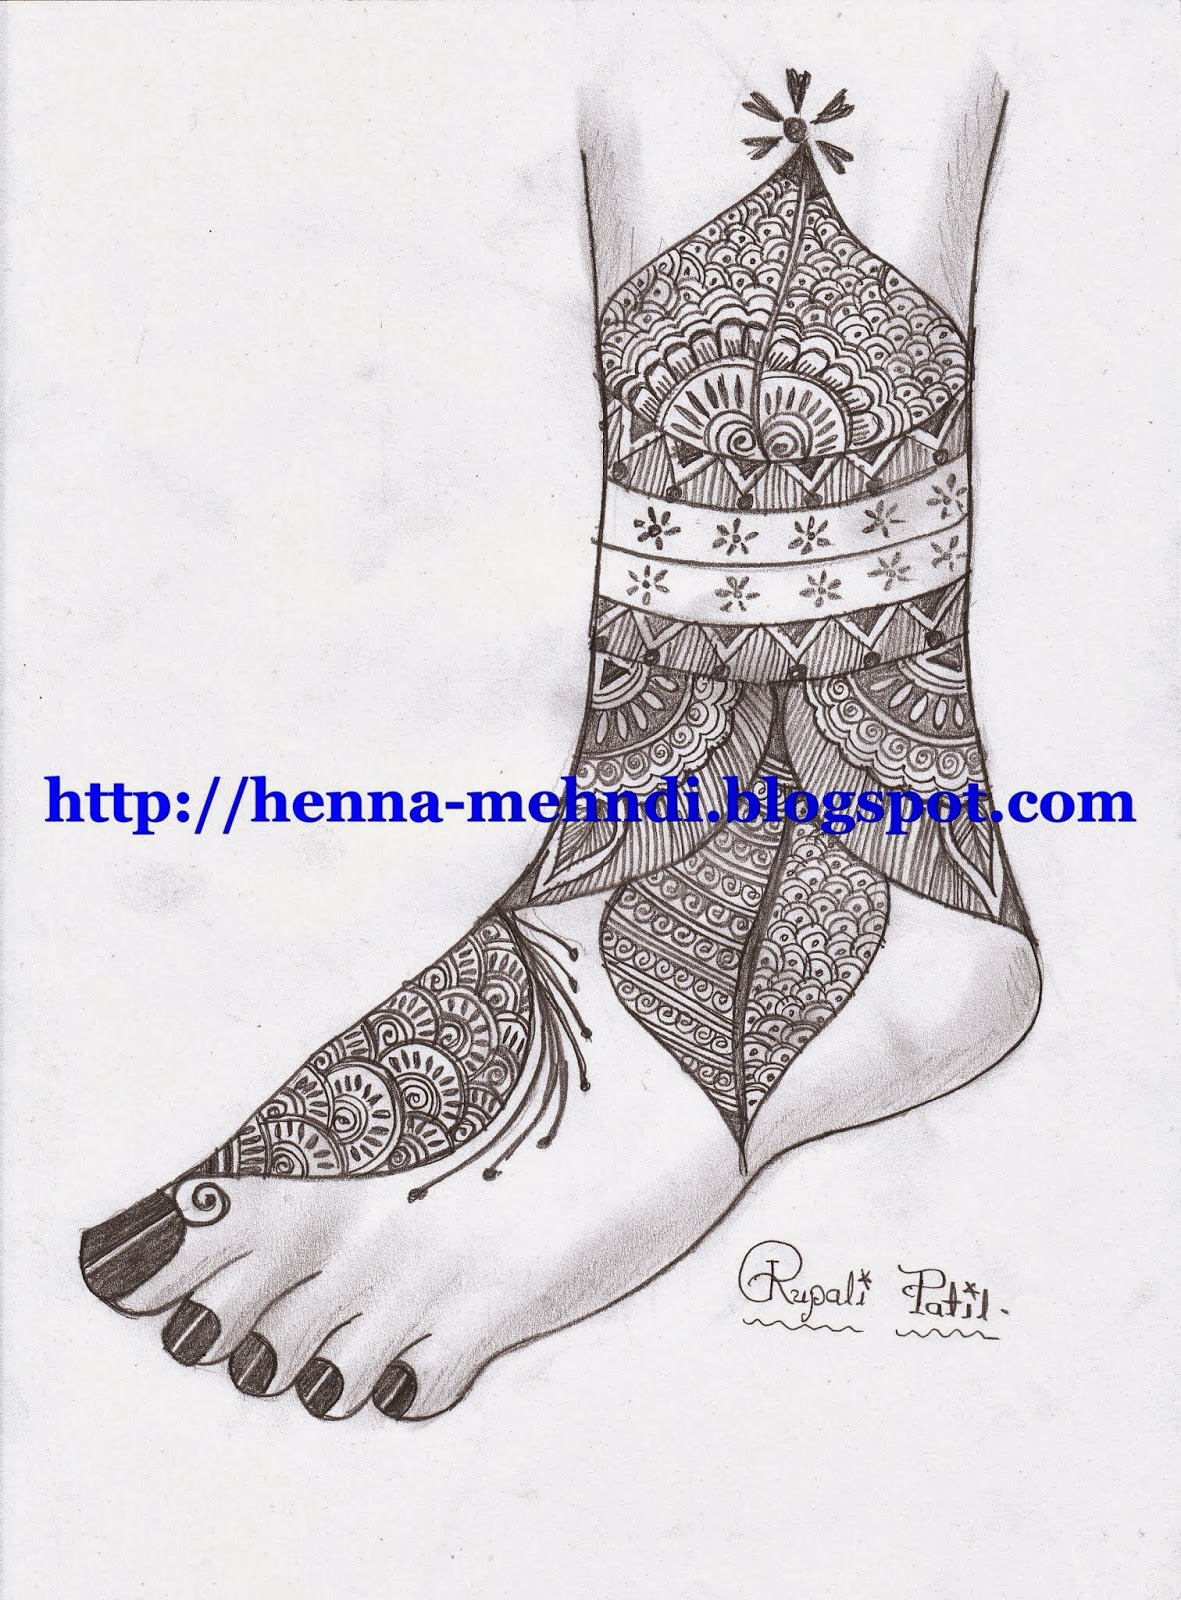 Henna Mehndi Design For Legs Feet Henna Mehndi Designs Body